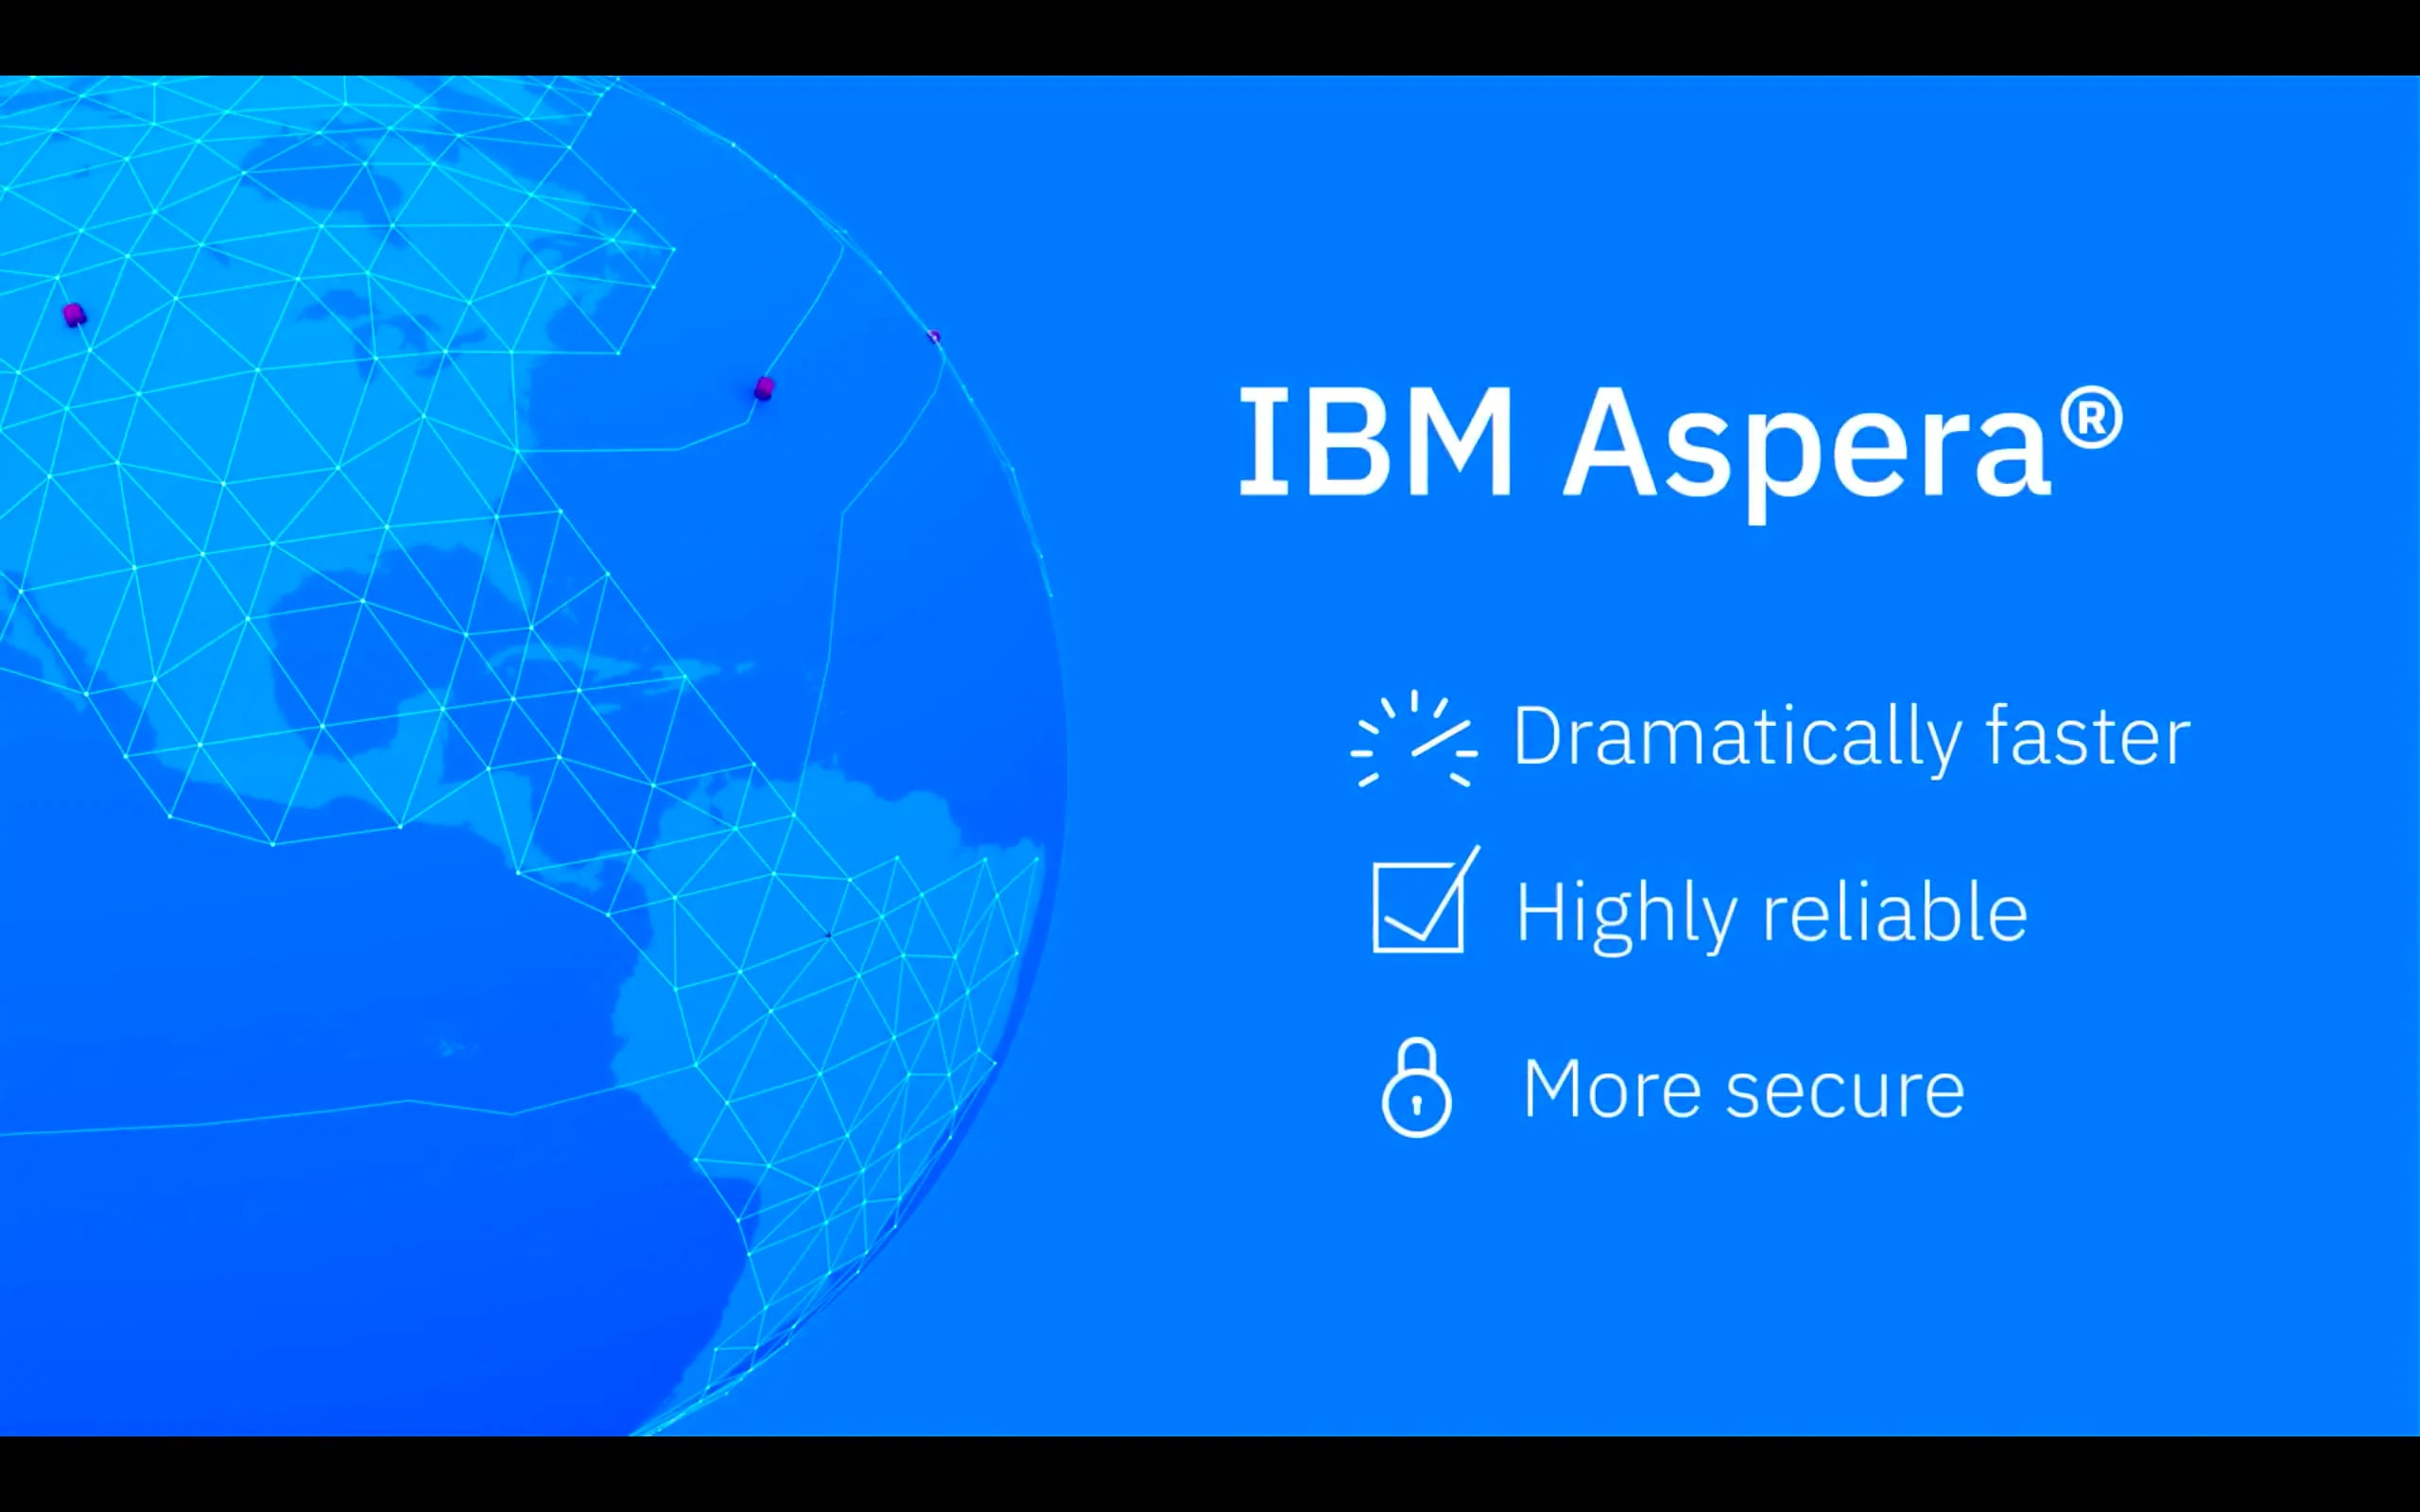 IBM Aspera Overview: Moving the World's Data at Maximum Speed